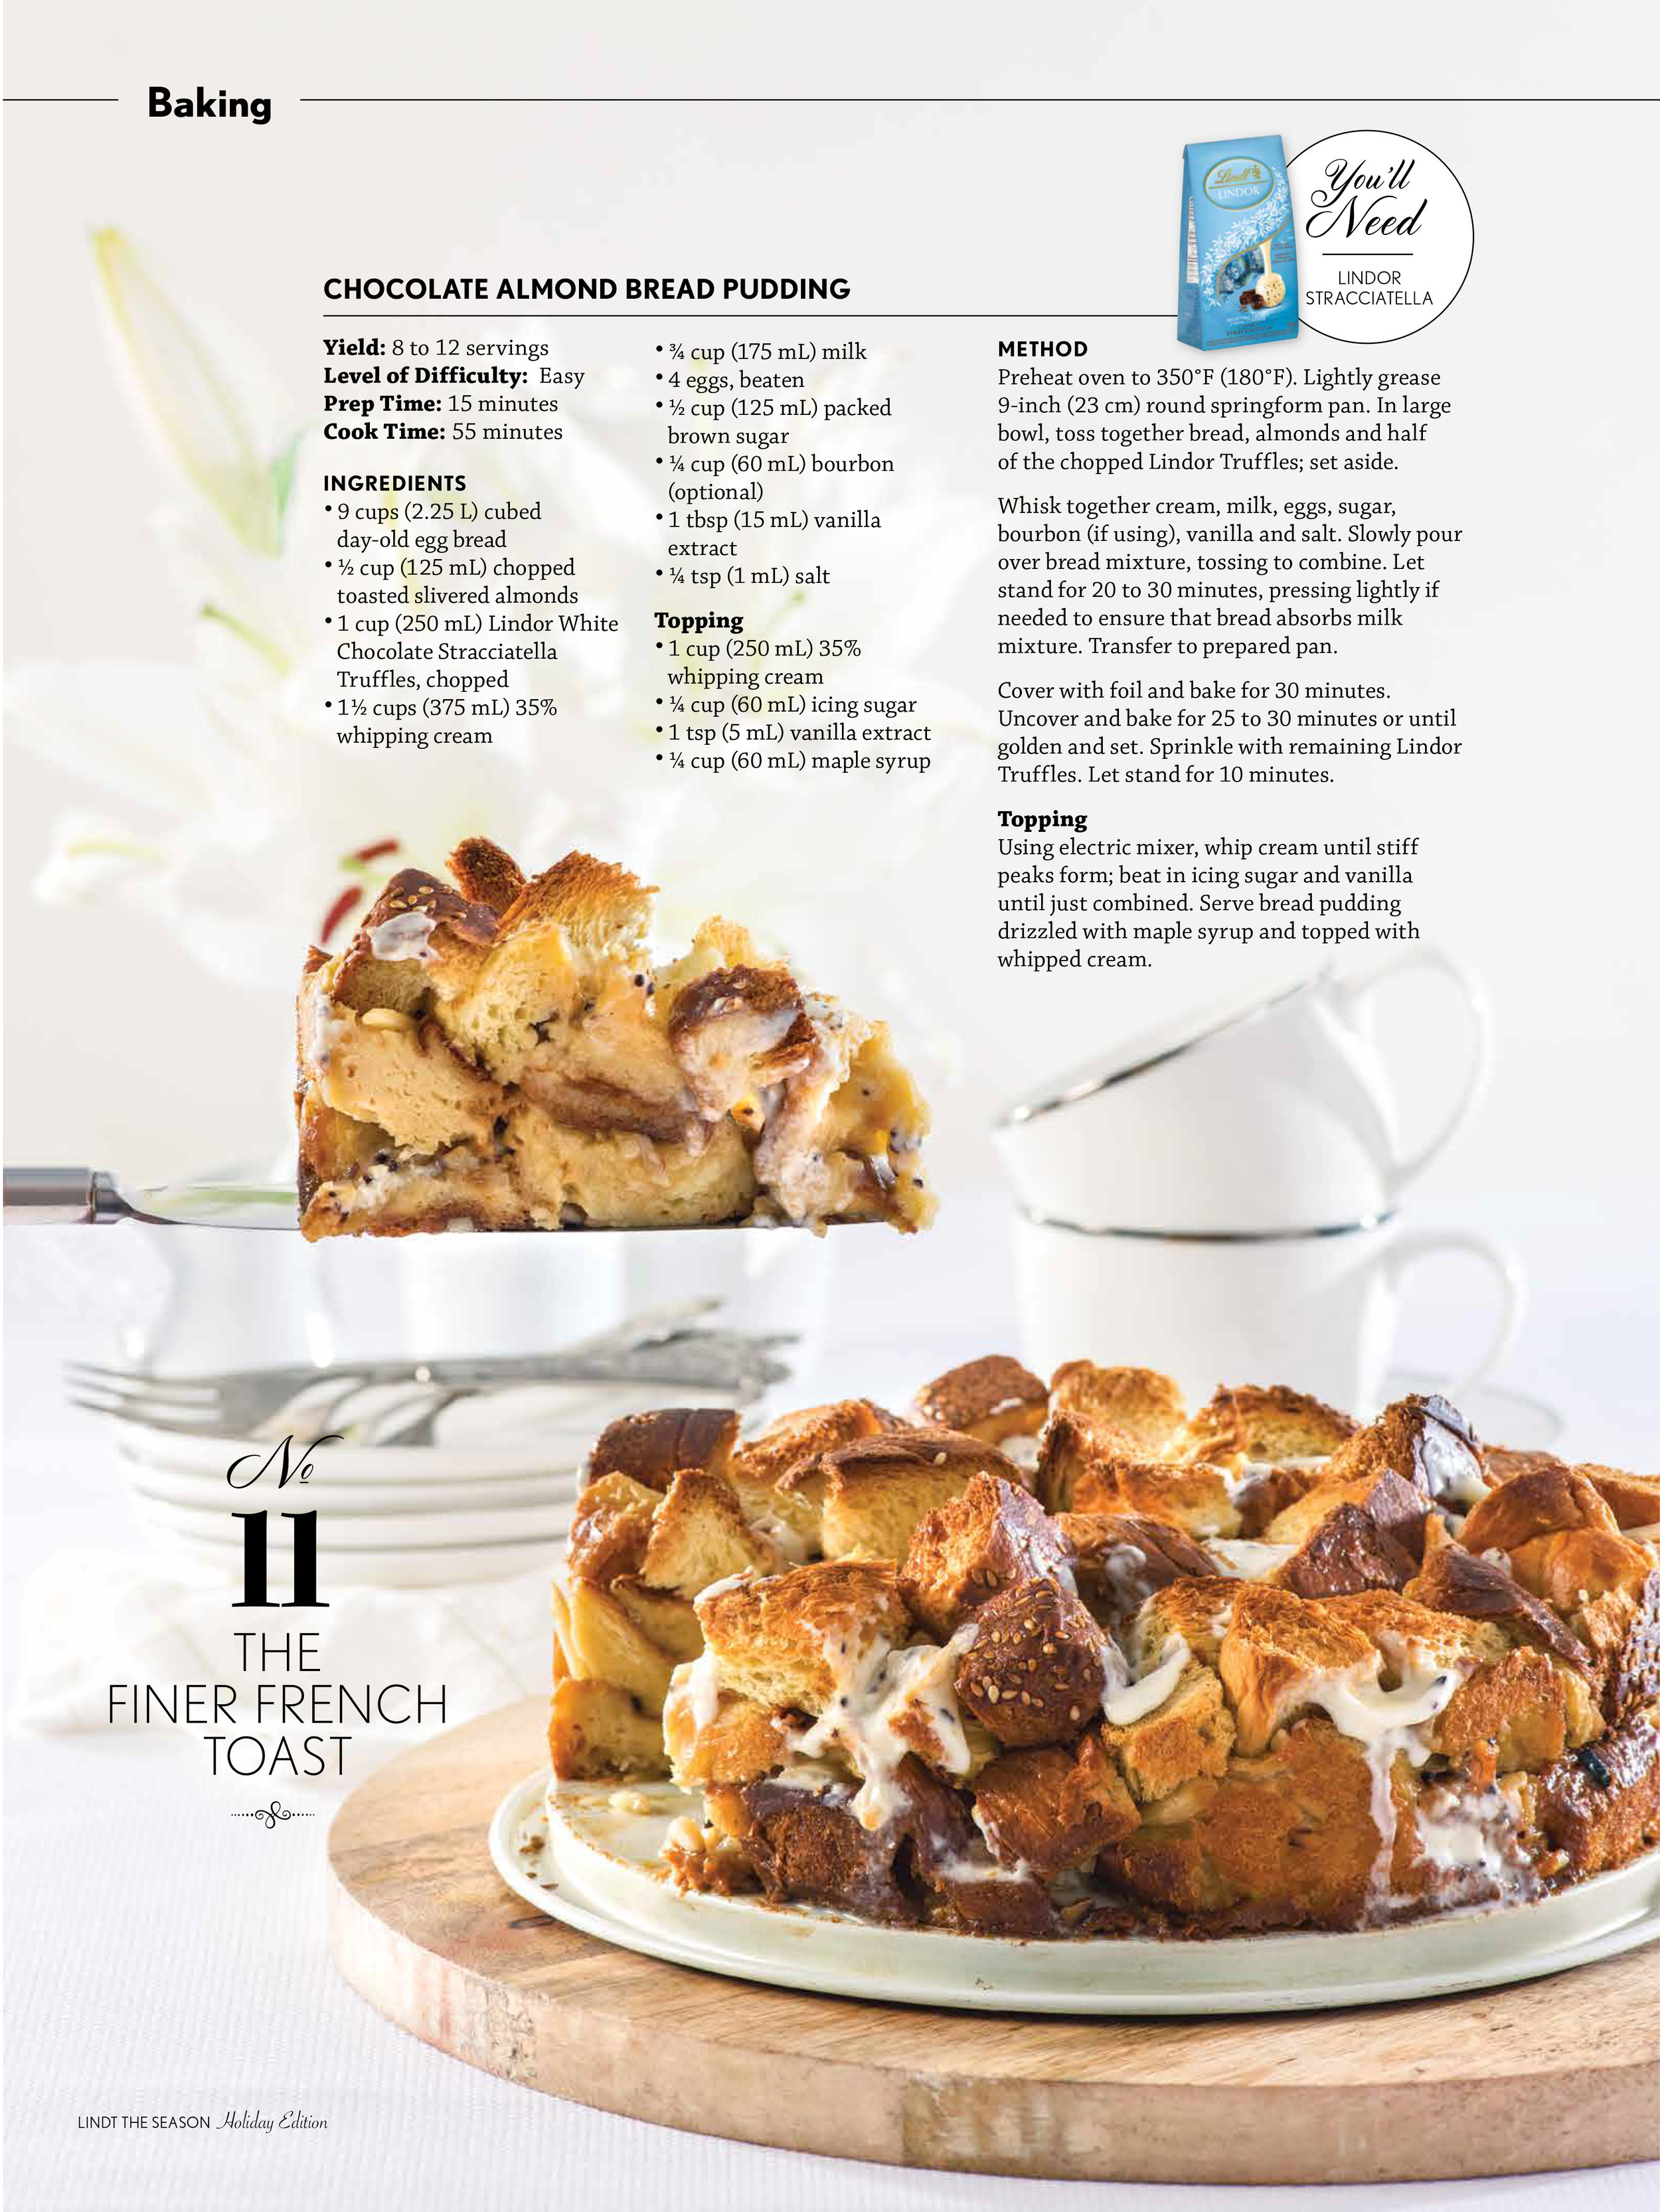 Lindt_The_Season_2016 Chocolate Almod Bread Pudding.jpg